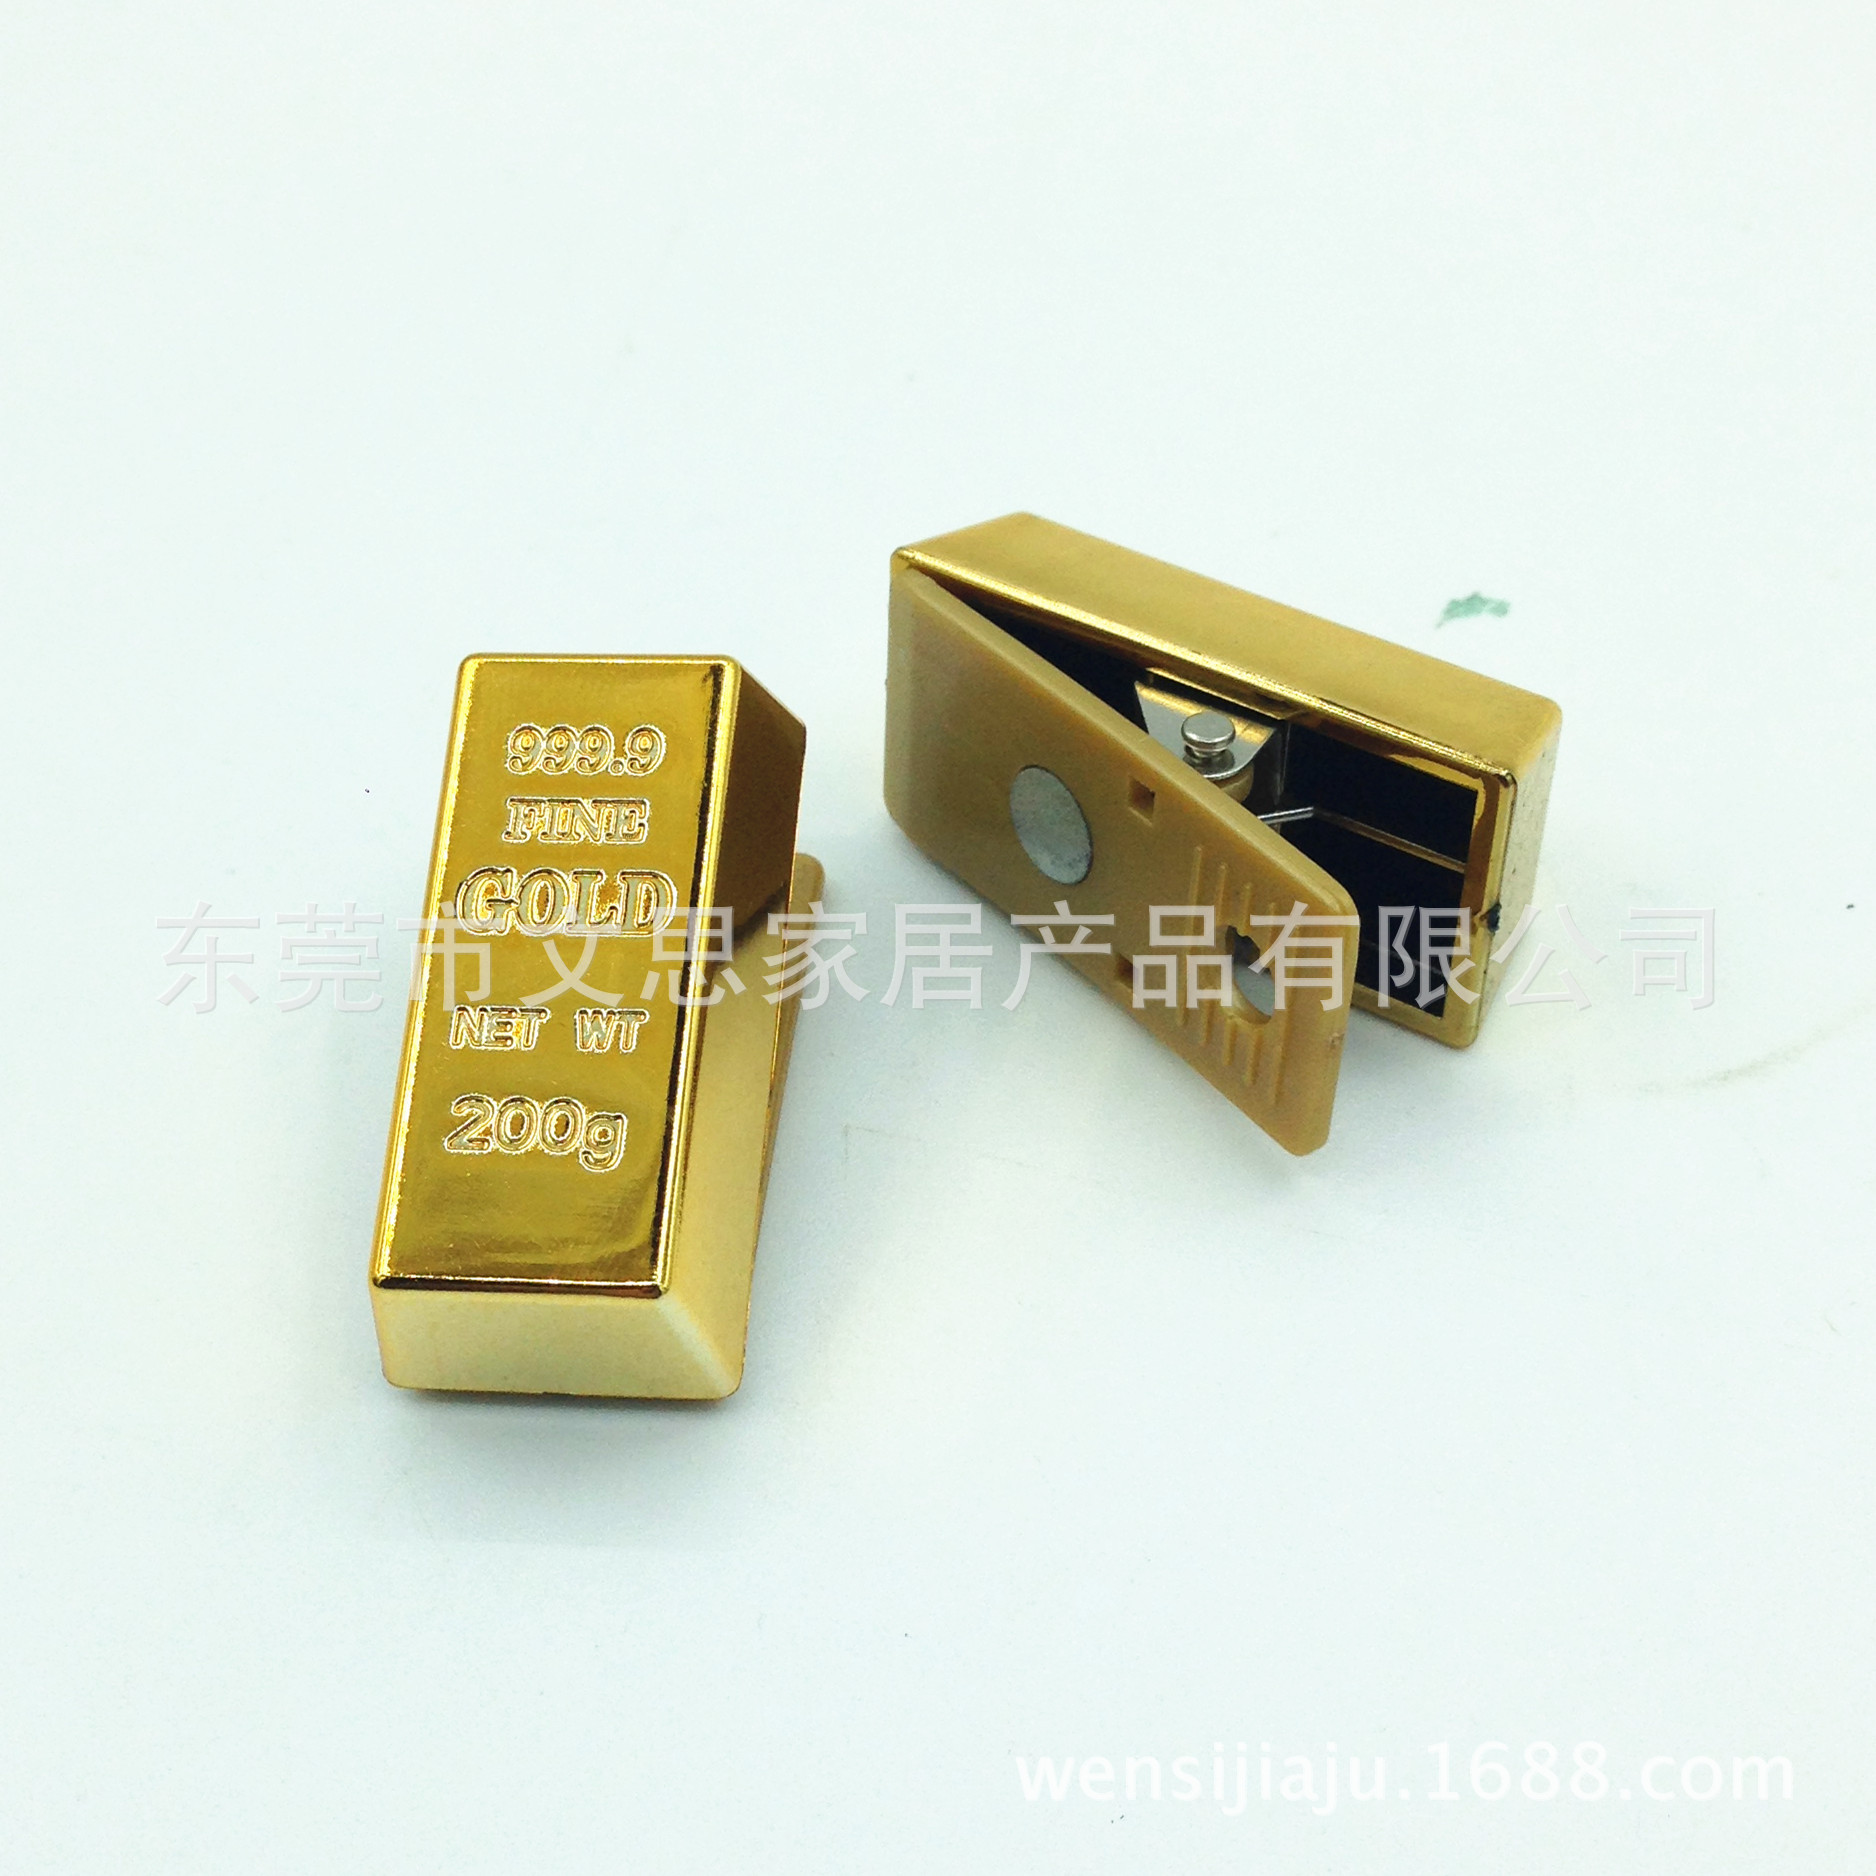 Creative Office Stationery Small Clip/Gold Bars Magnetic Clip/Folder Voucher/Documents Creative Gifts Wholesale